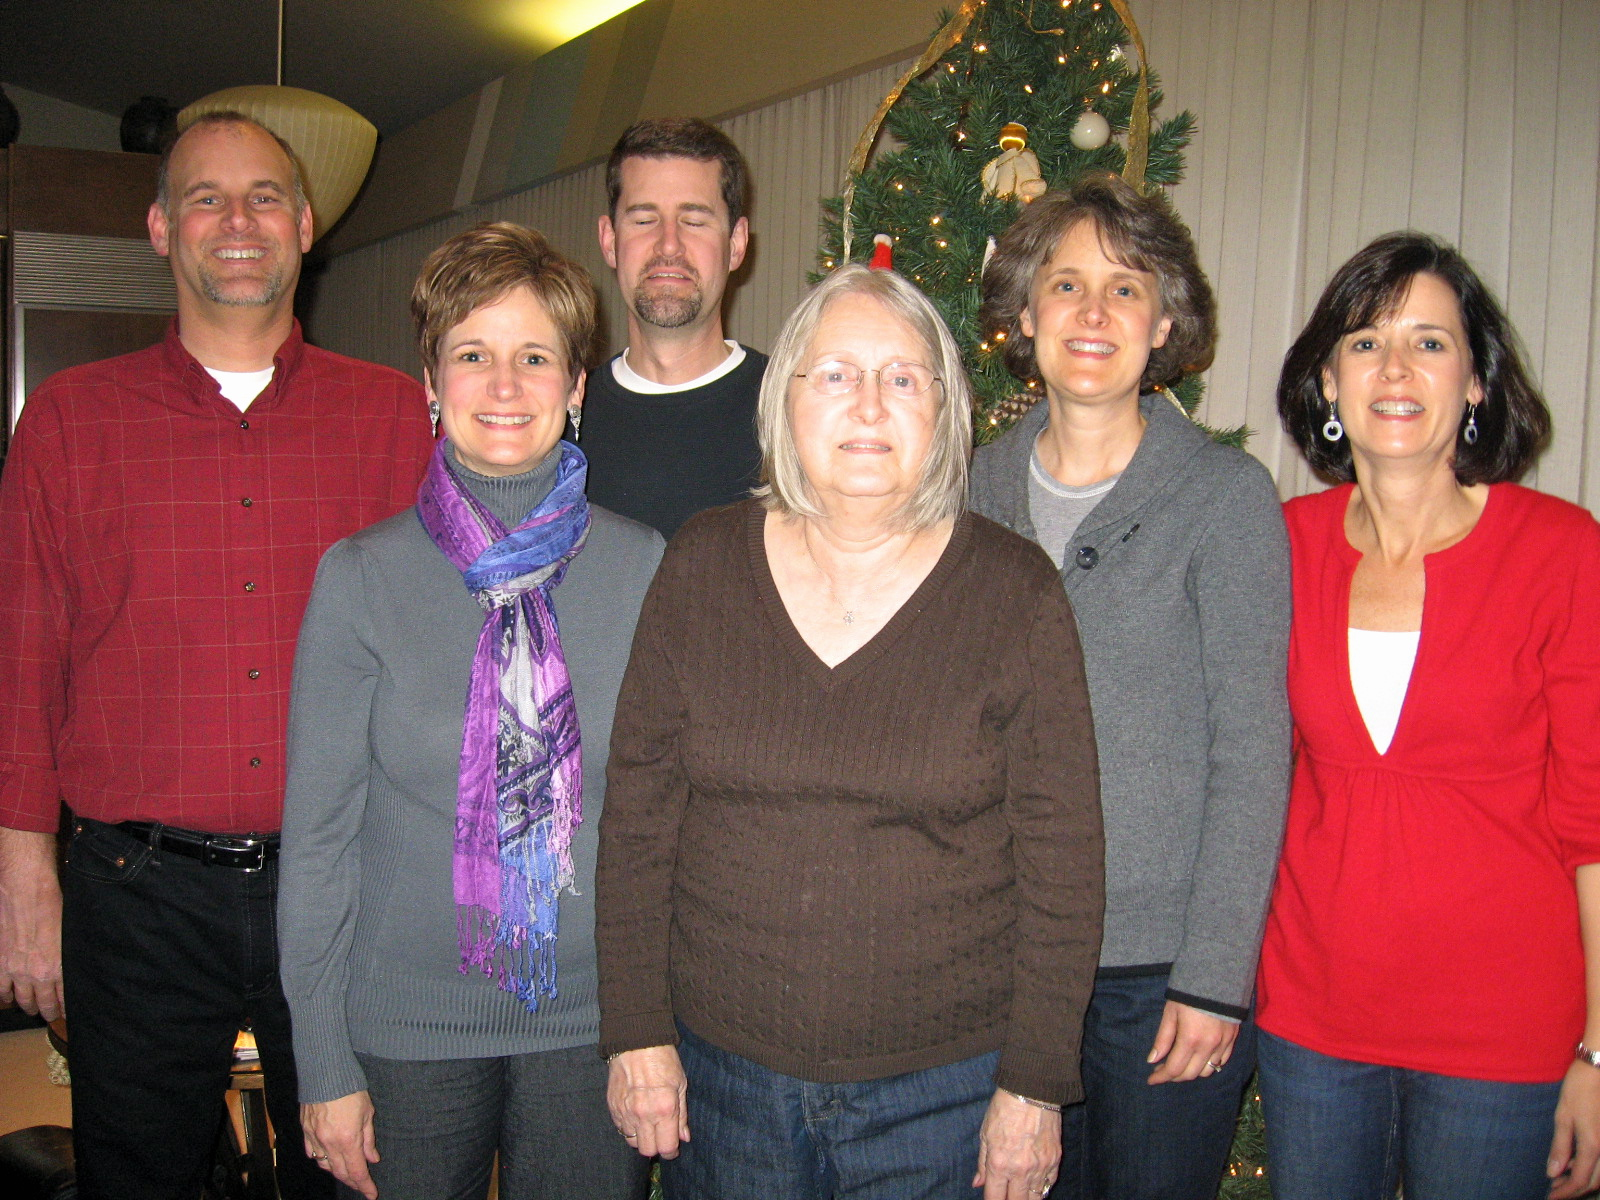 Grandma and her kids at the last Christmas at her house.